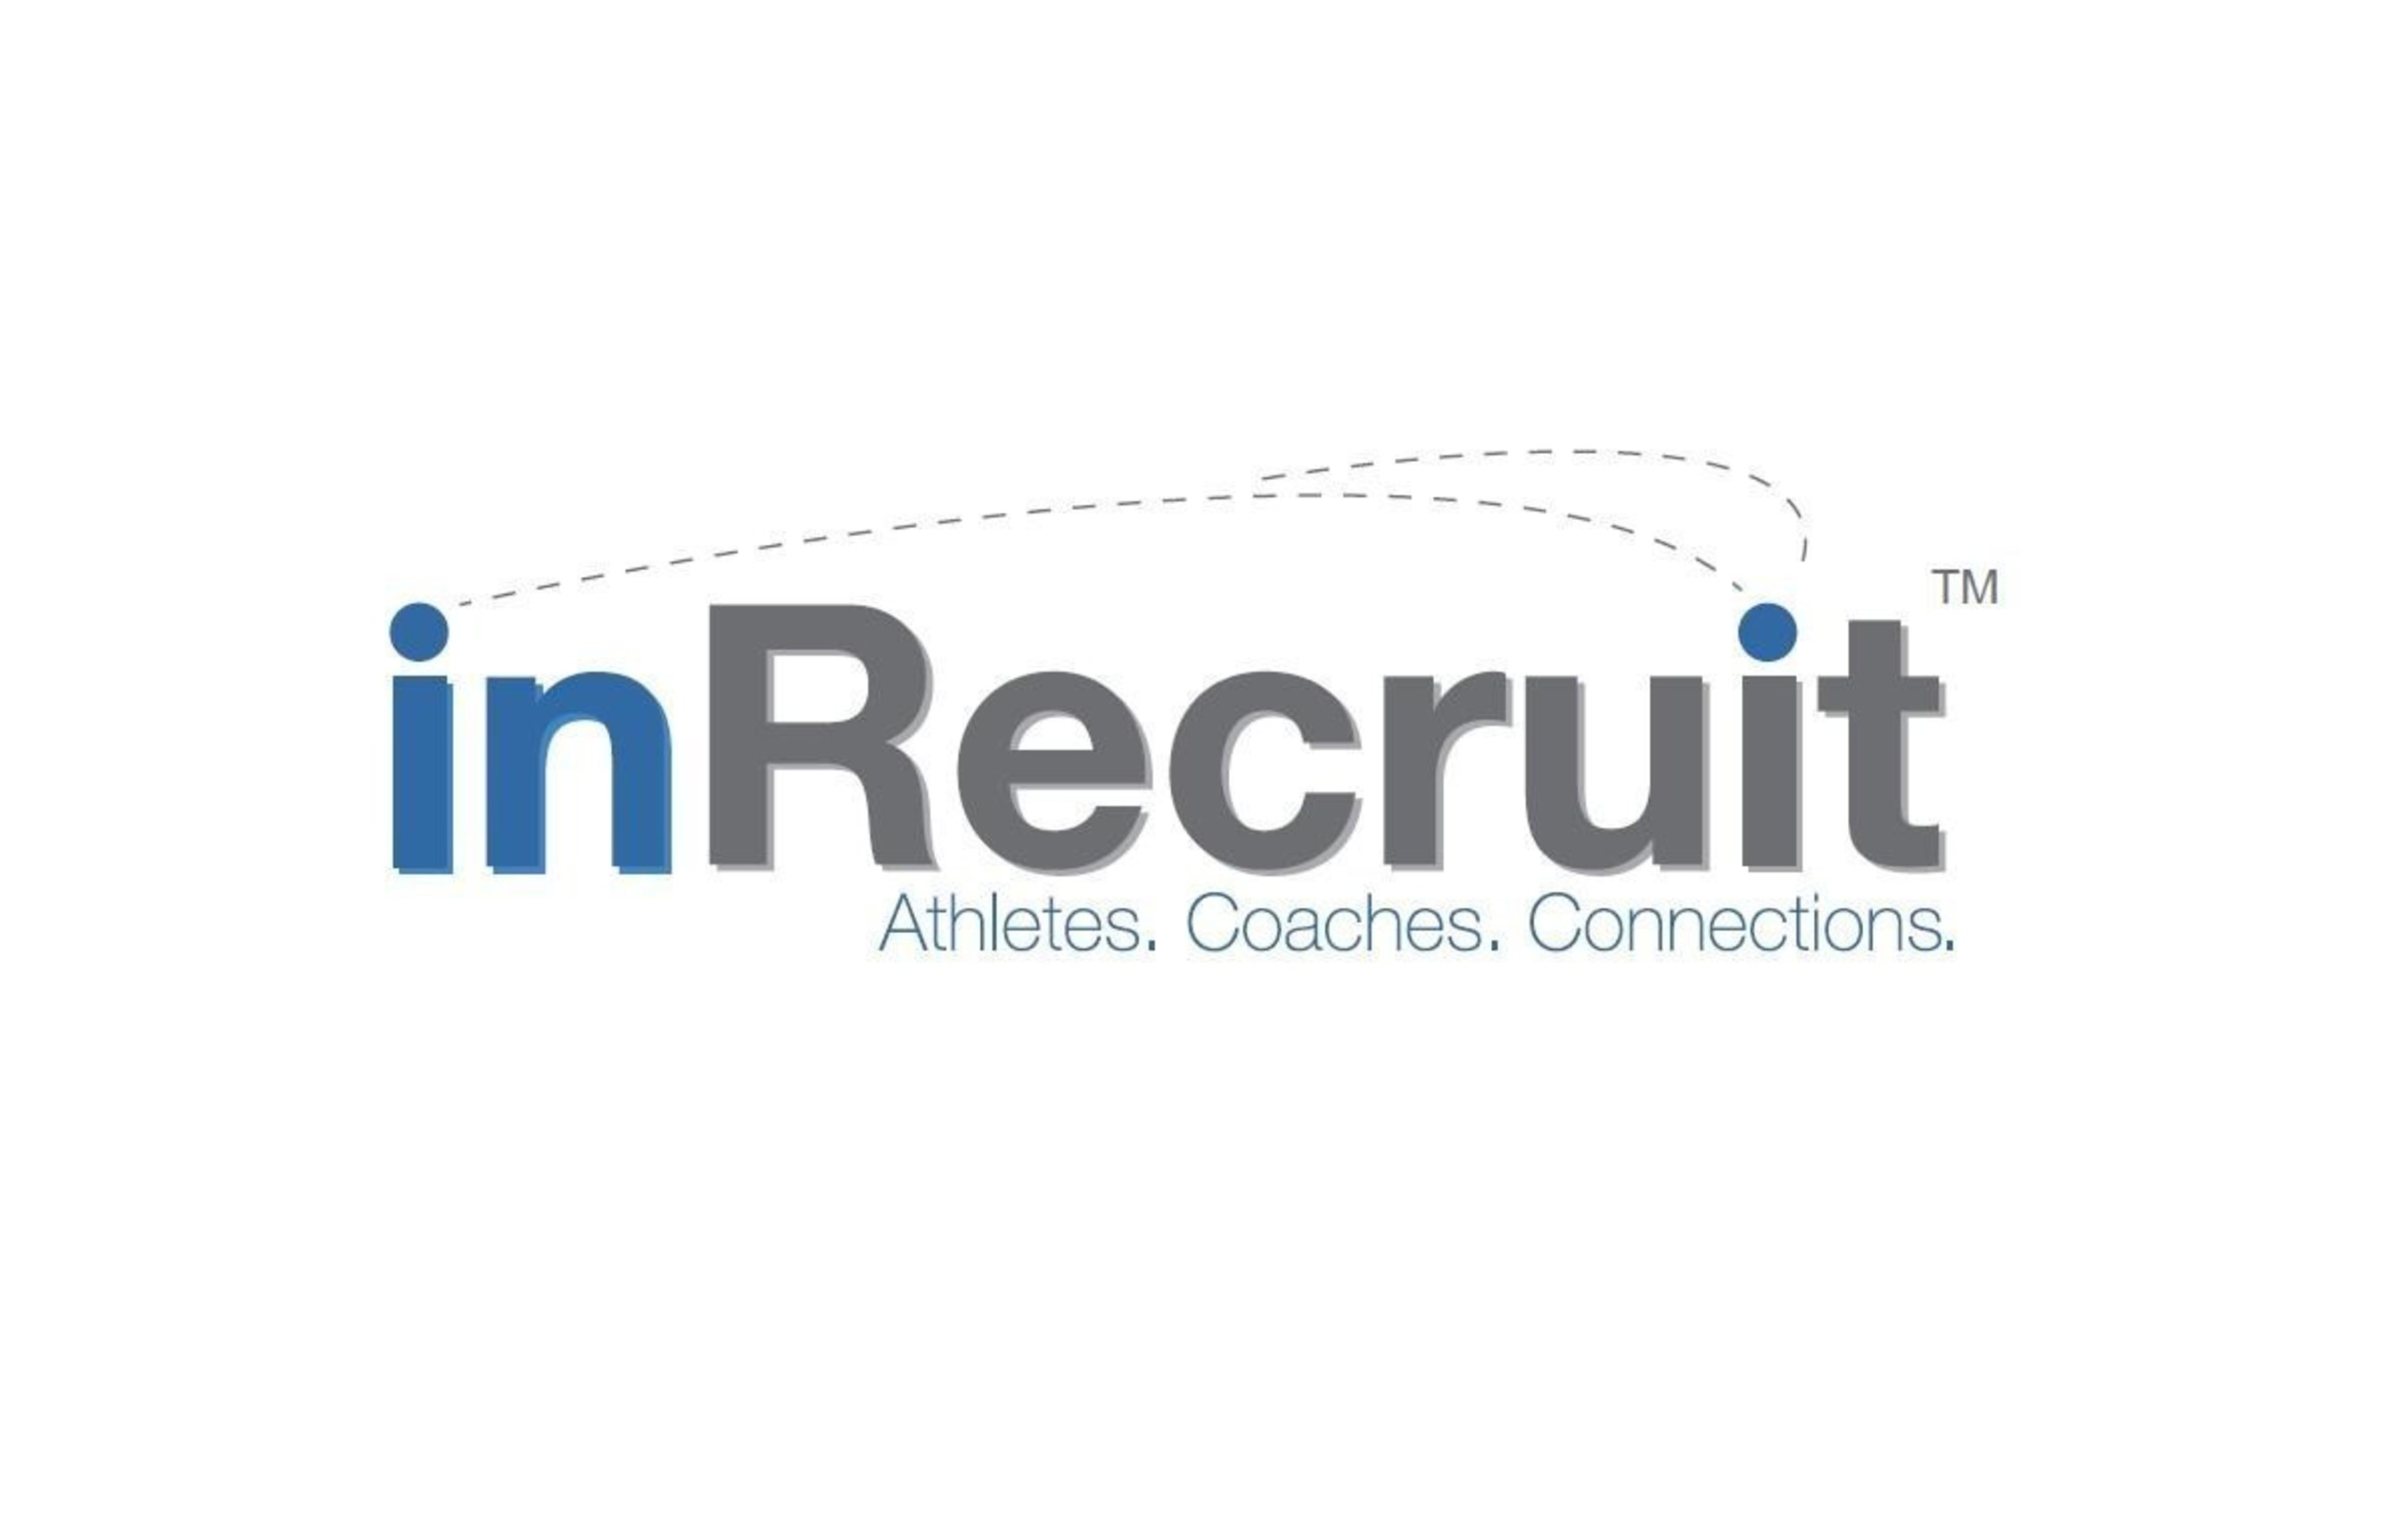 inRecruit Merges with Bownce and Inks Exclusive Partnership with Xplosive Sports Academy